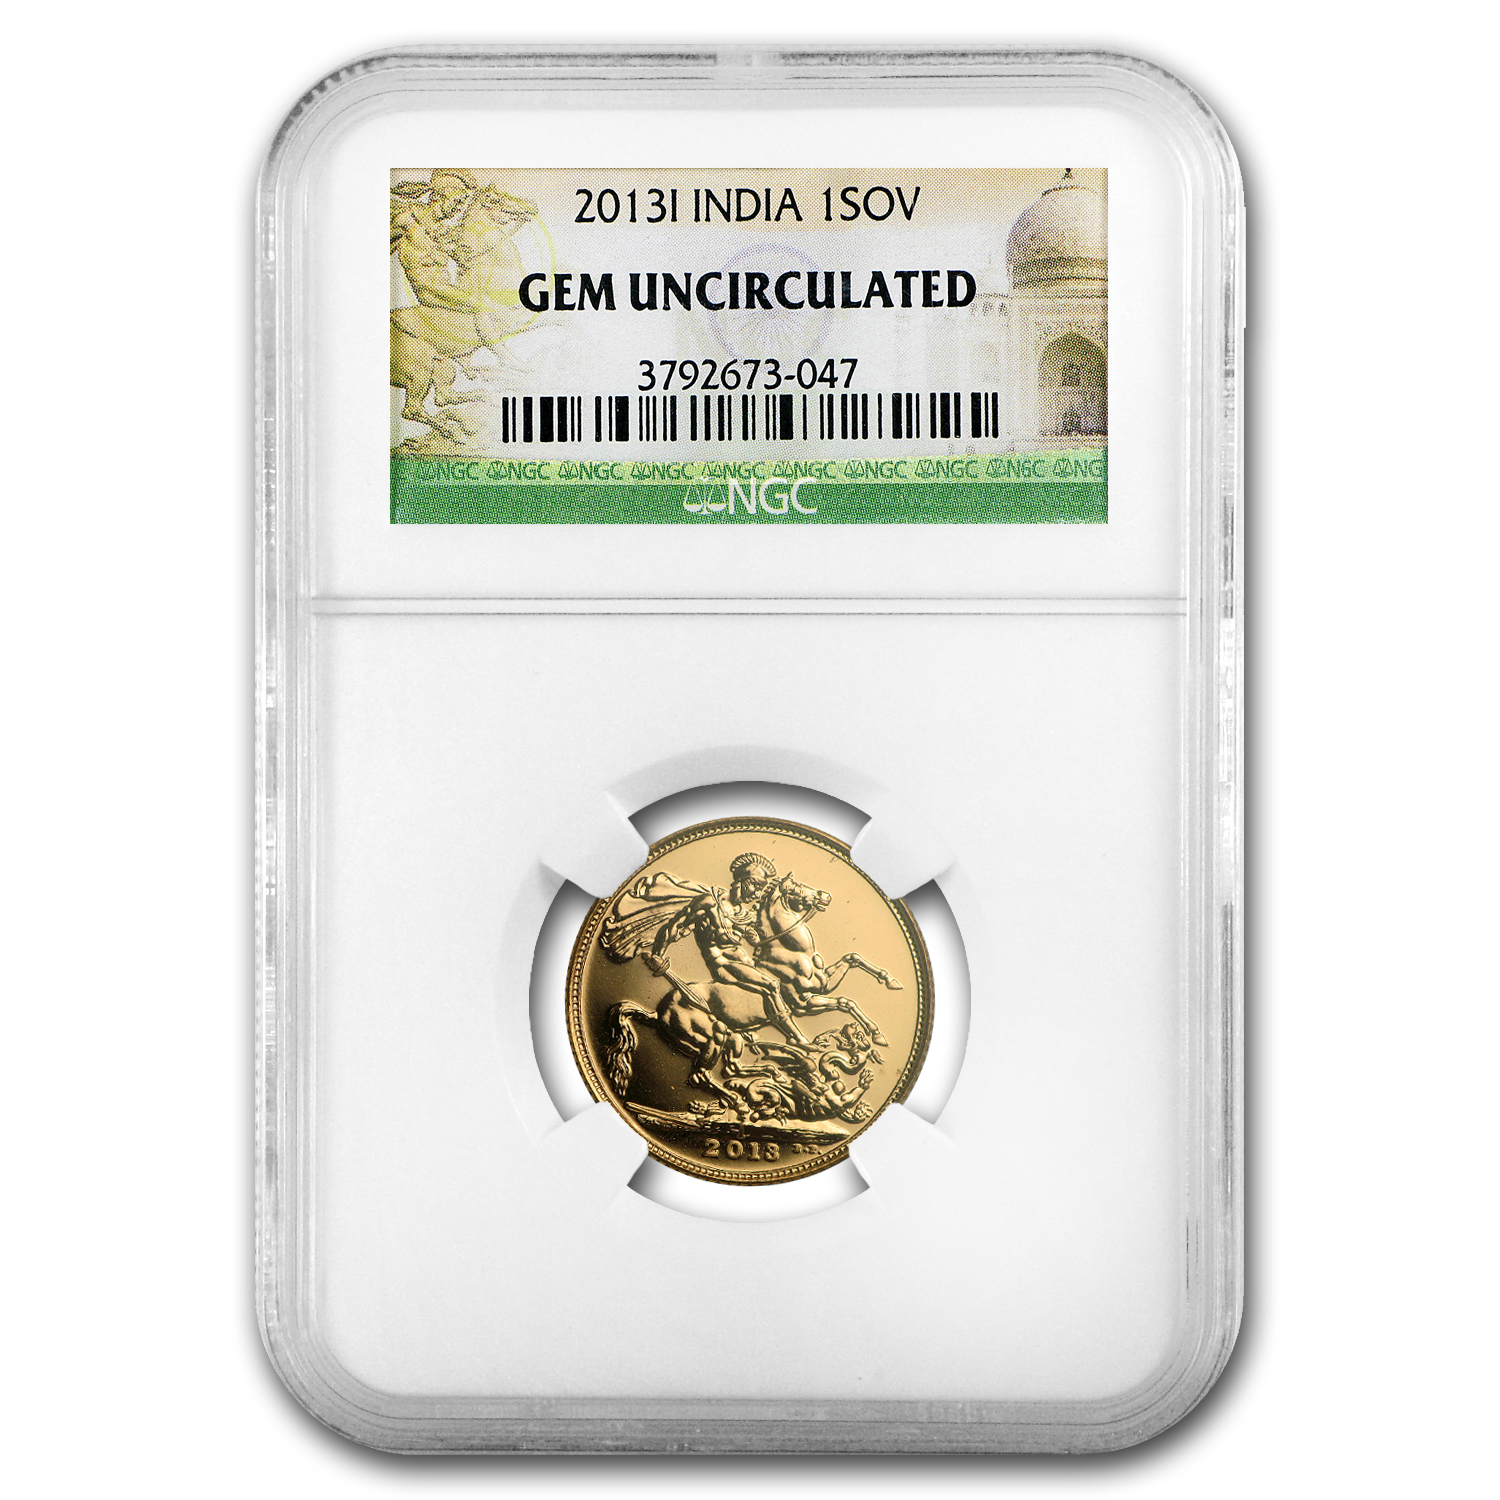 2013 India Gold Sovereign Gem Unc NGC